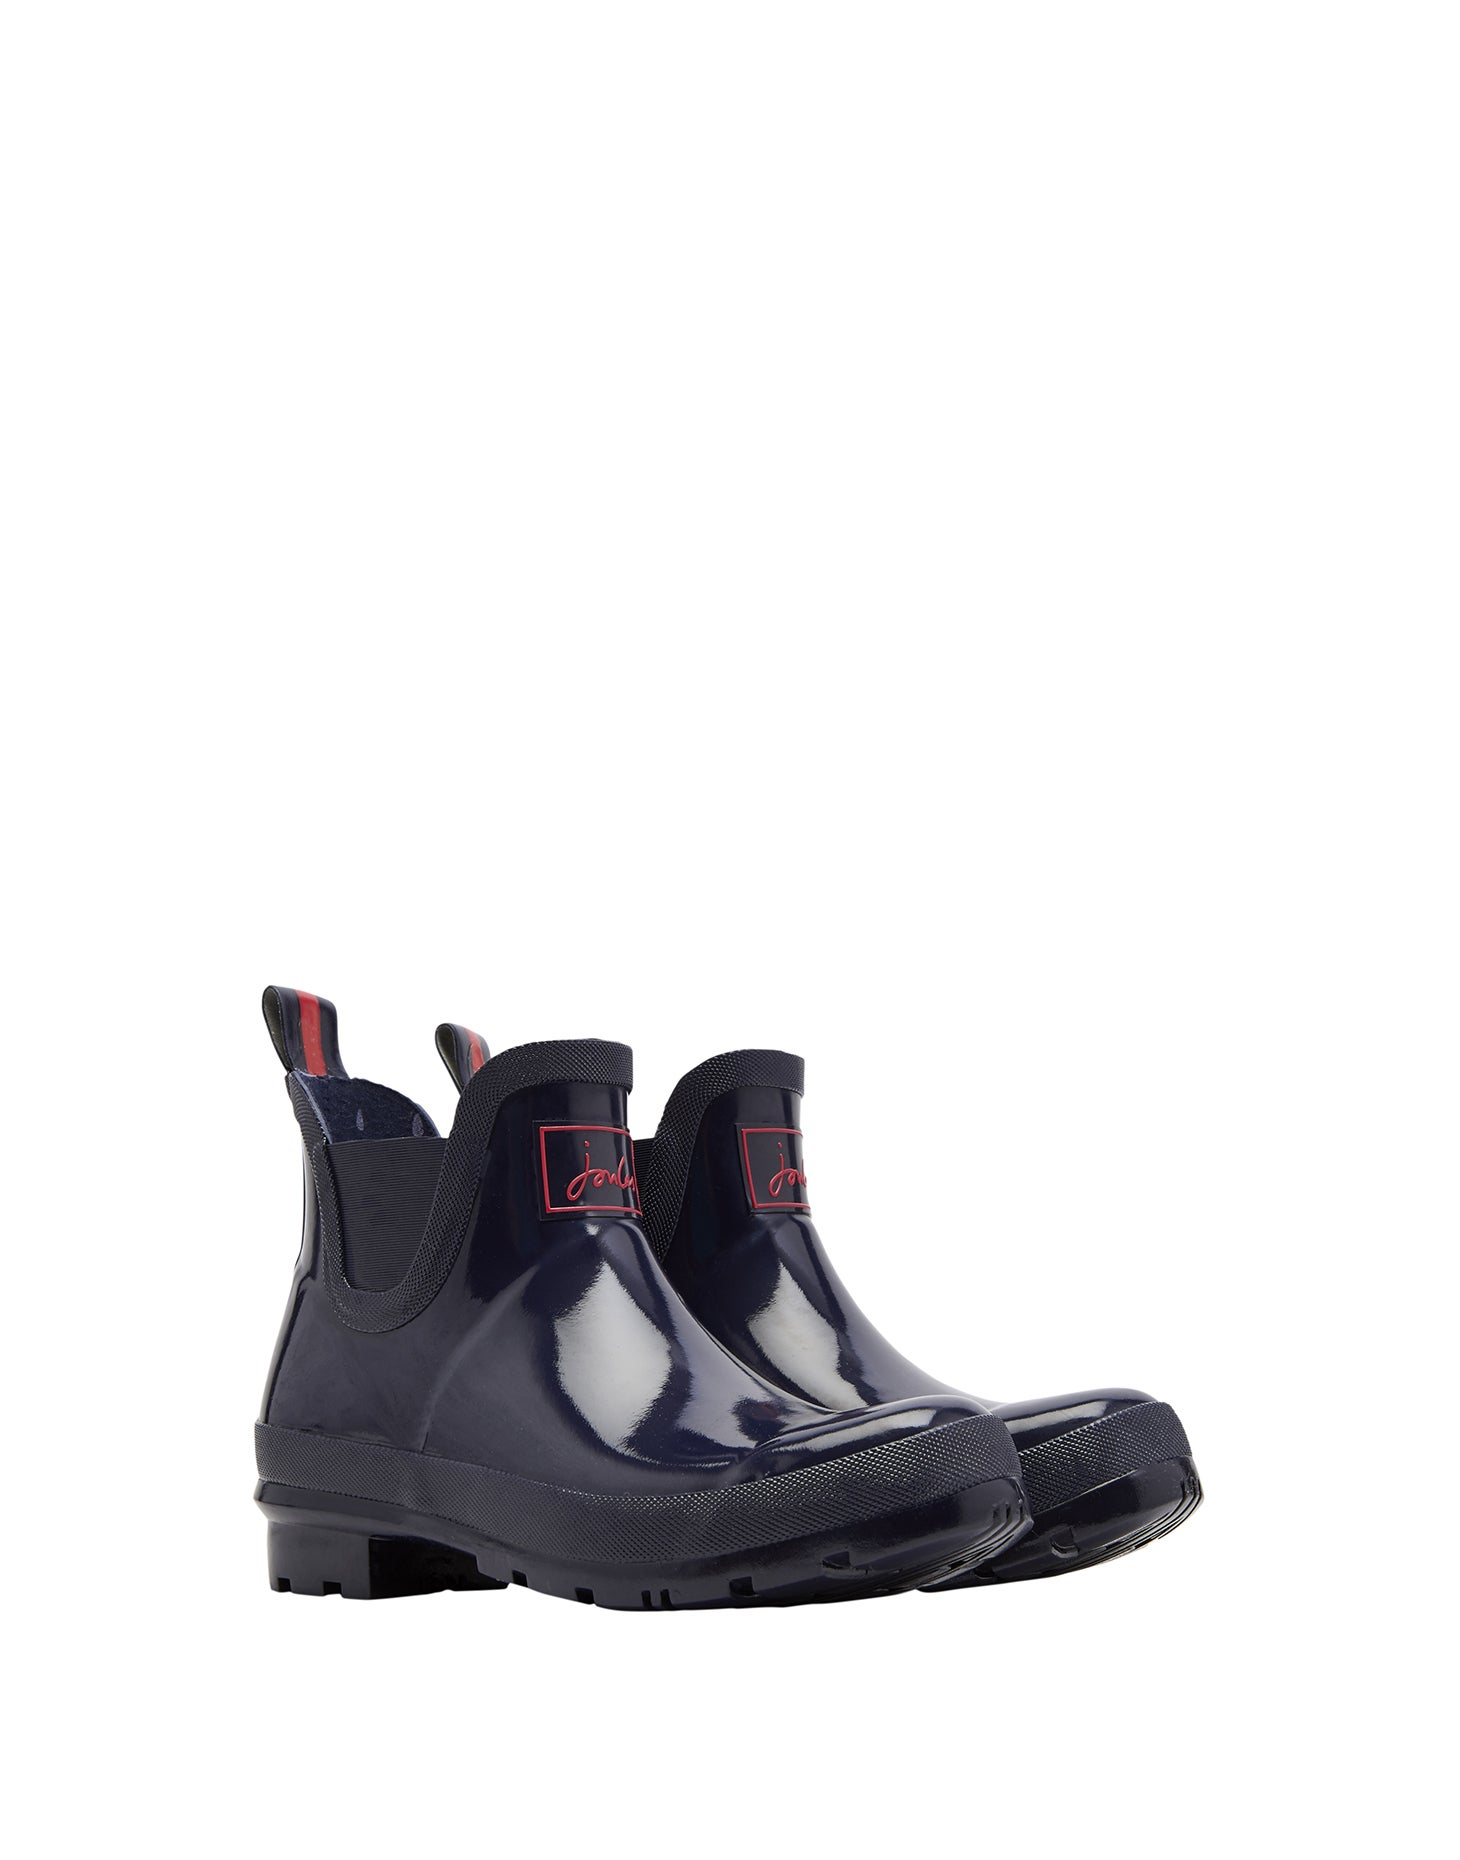 Joules Wellibob Gloss Women's Wellington Boots